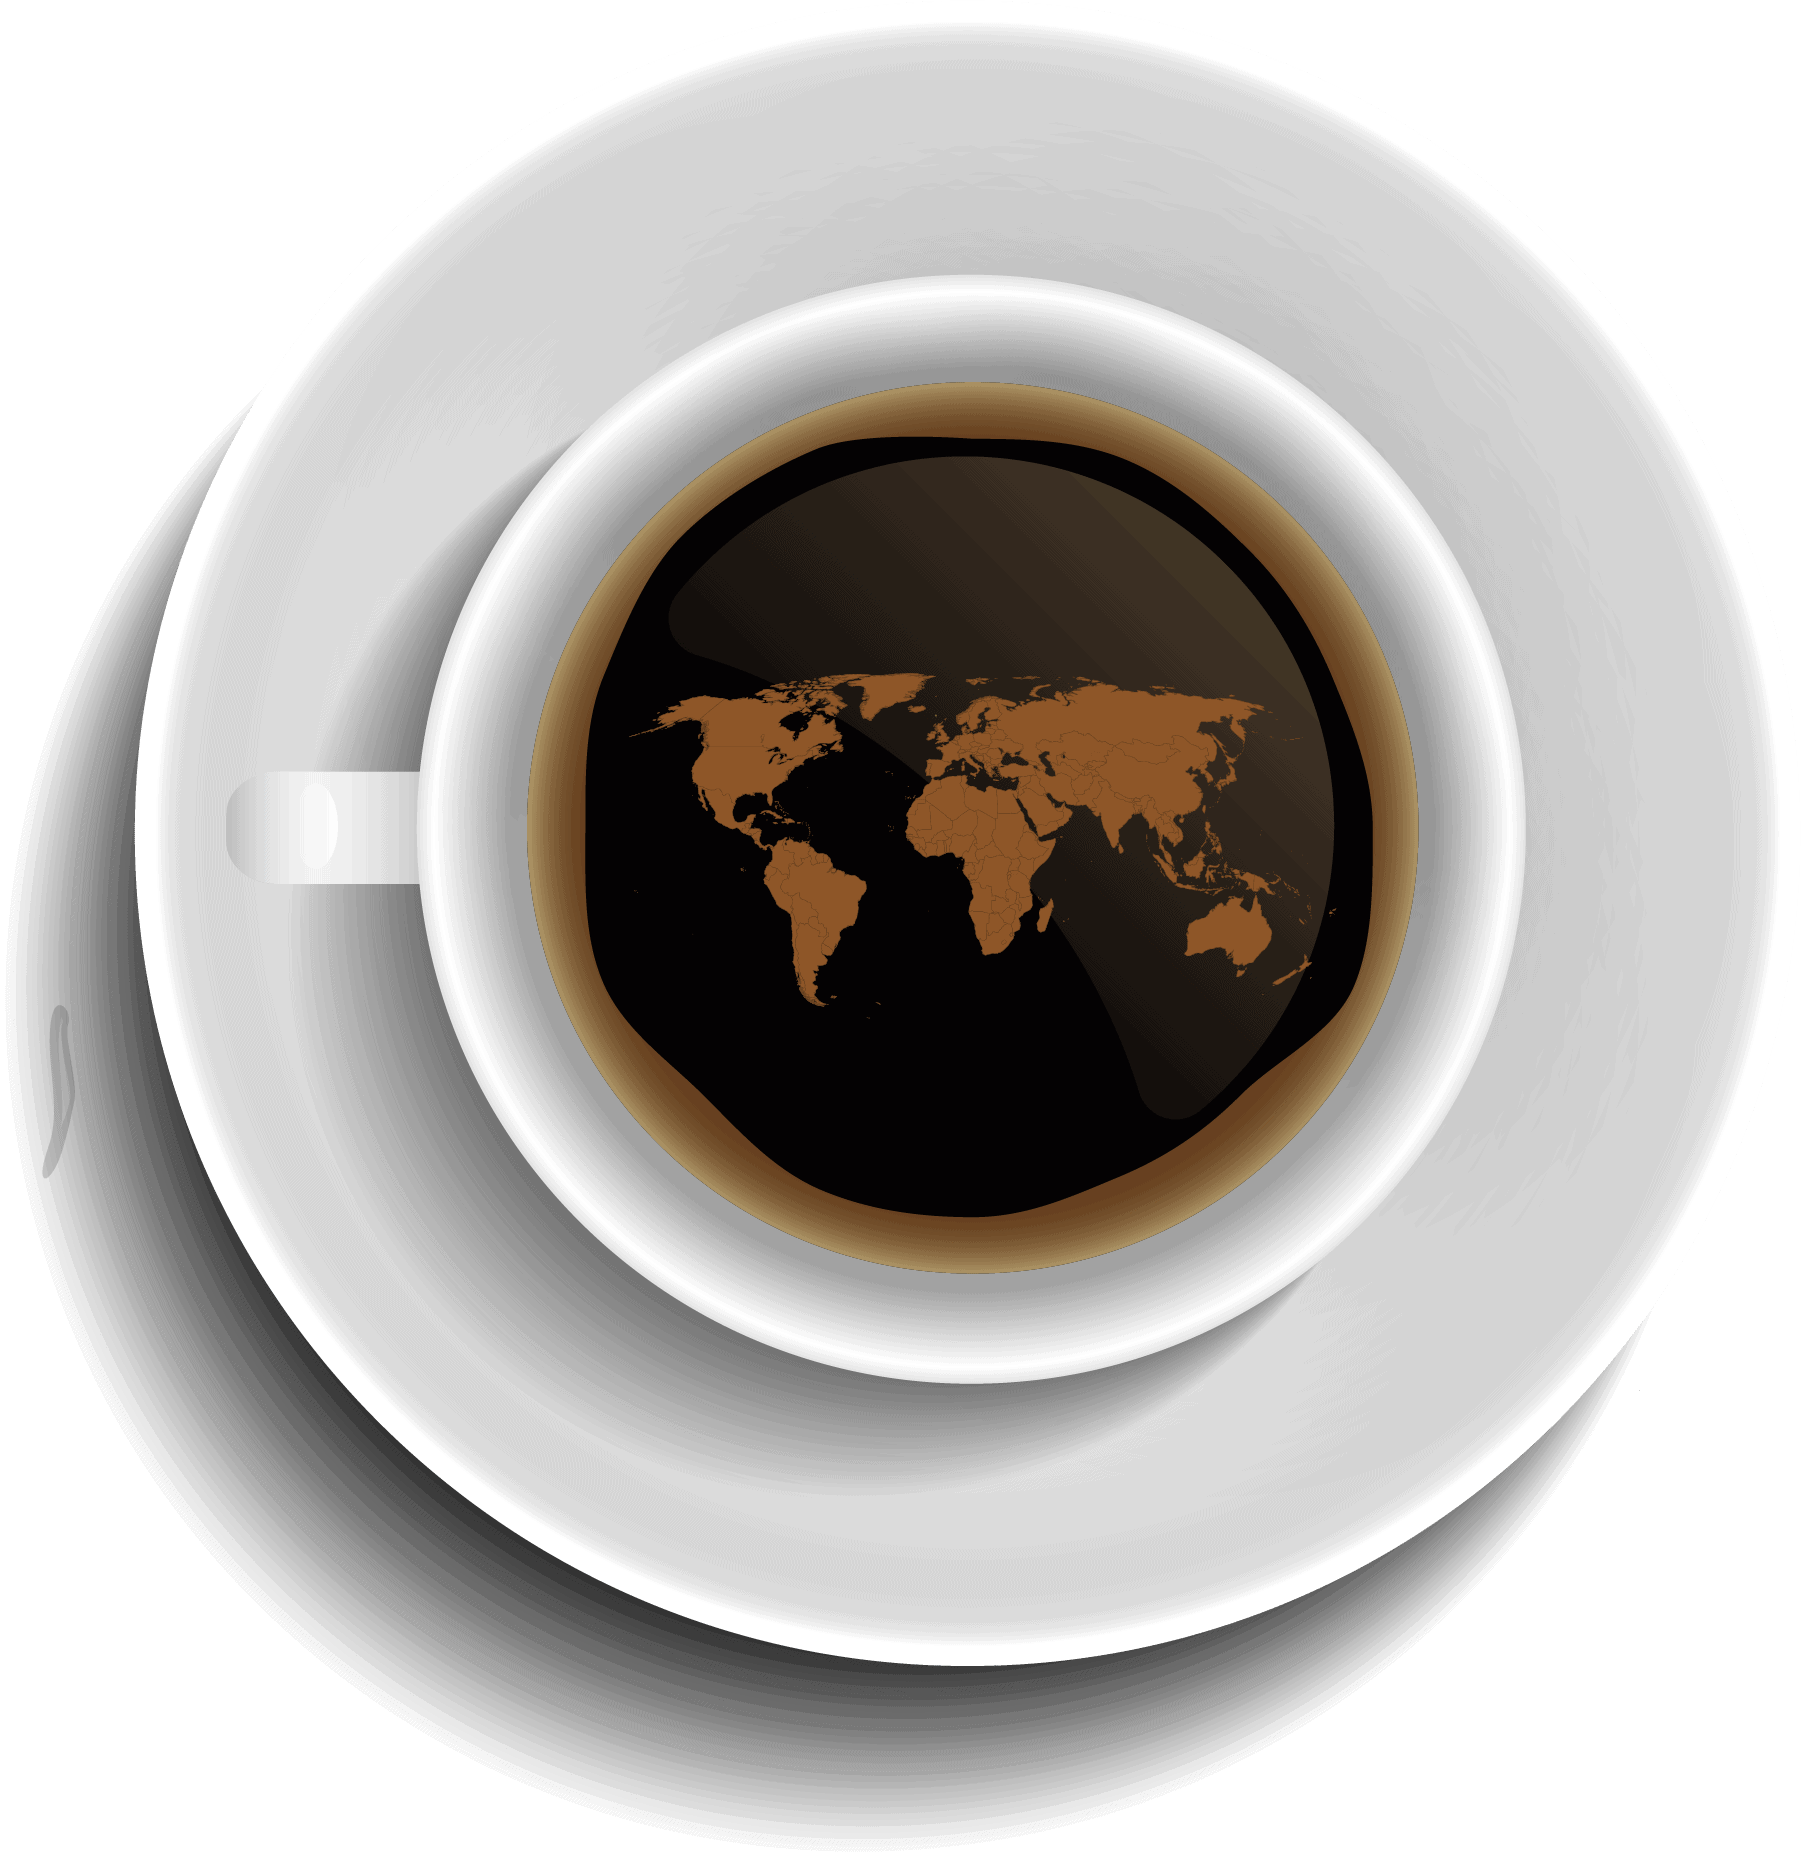 rwandan coffee, specialty coffee, empowerment, best coffee, good coffee, genocide,